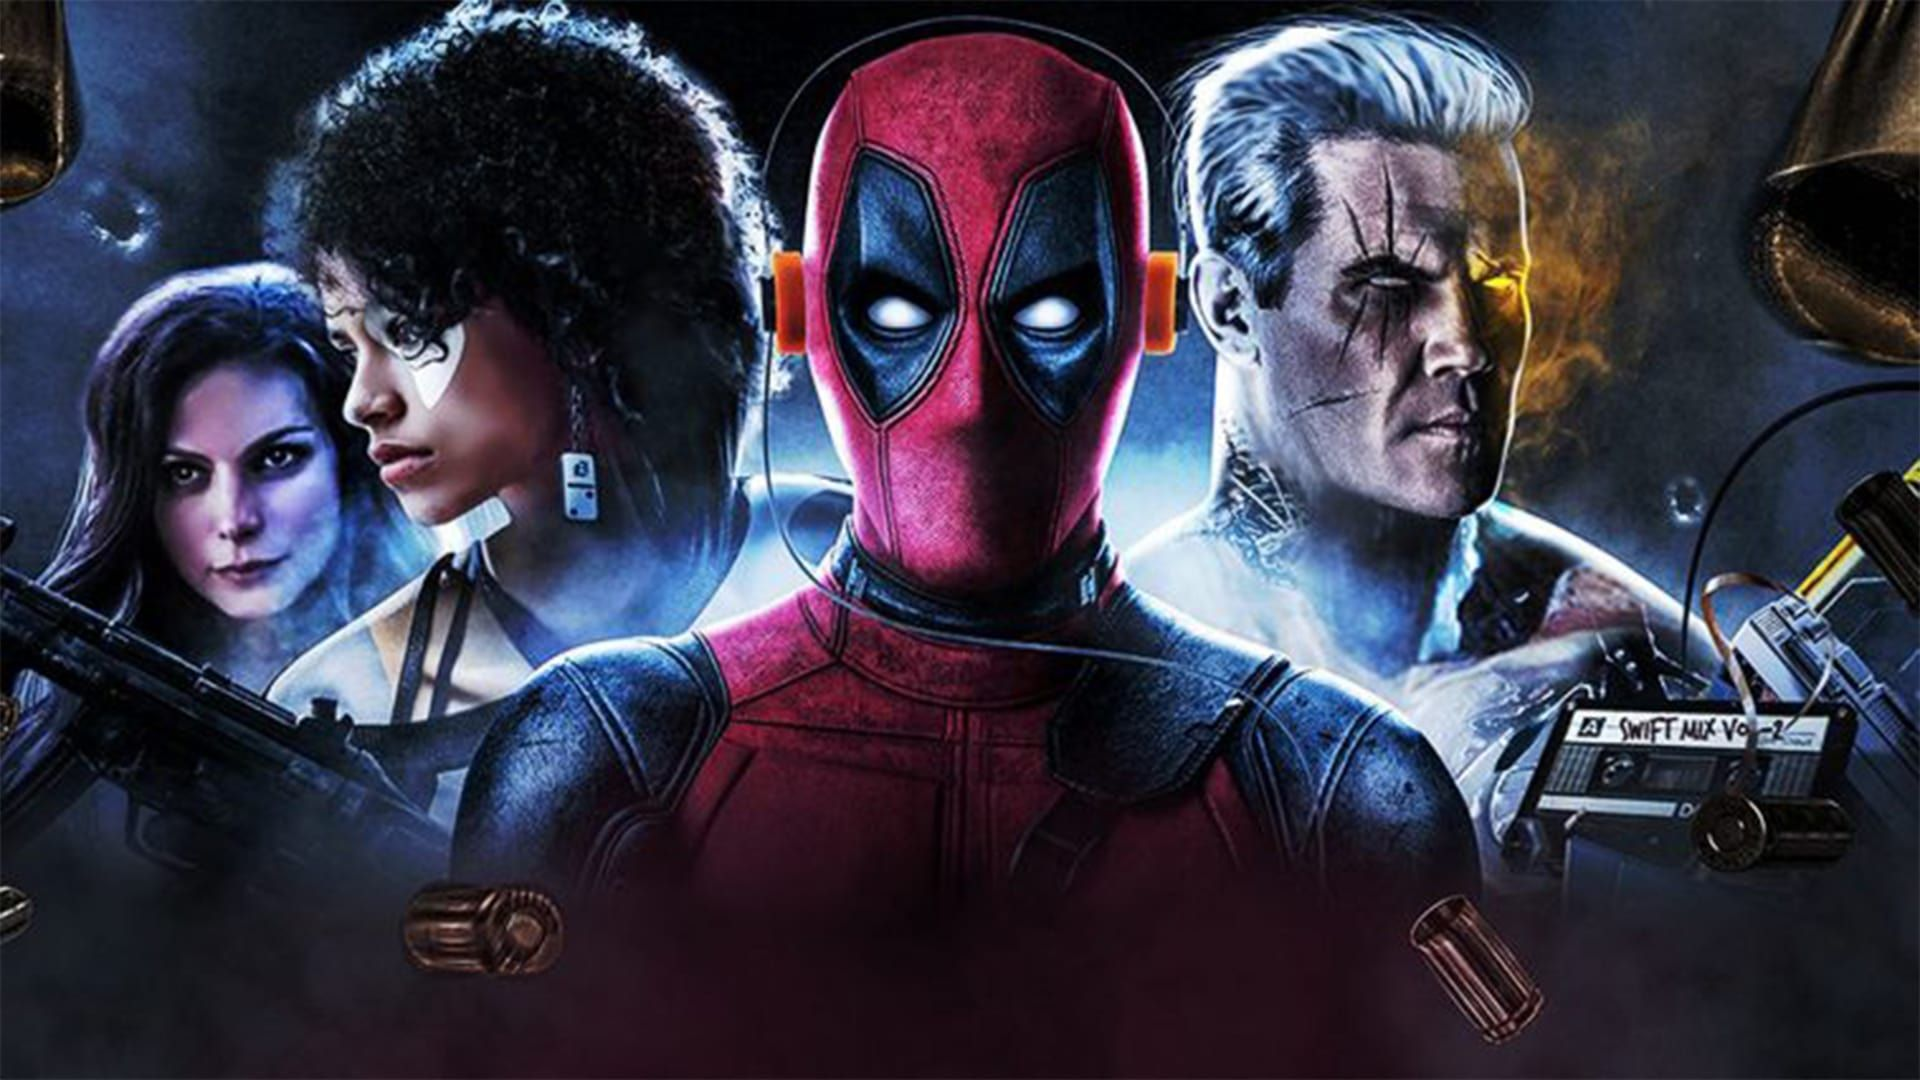 Watch Deadpool 2 2018 Full Movie Online Free Wisecracking Mercenary Deadpool Battles The Evil And Powerful Cable And Other Bad Guys To Save A